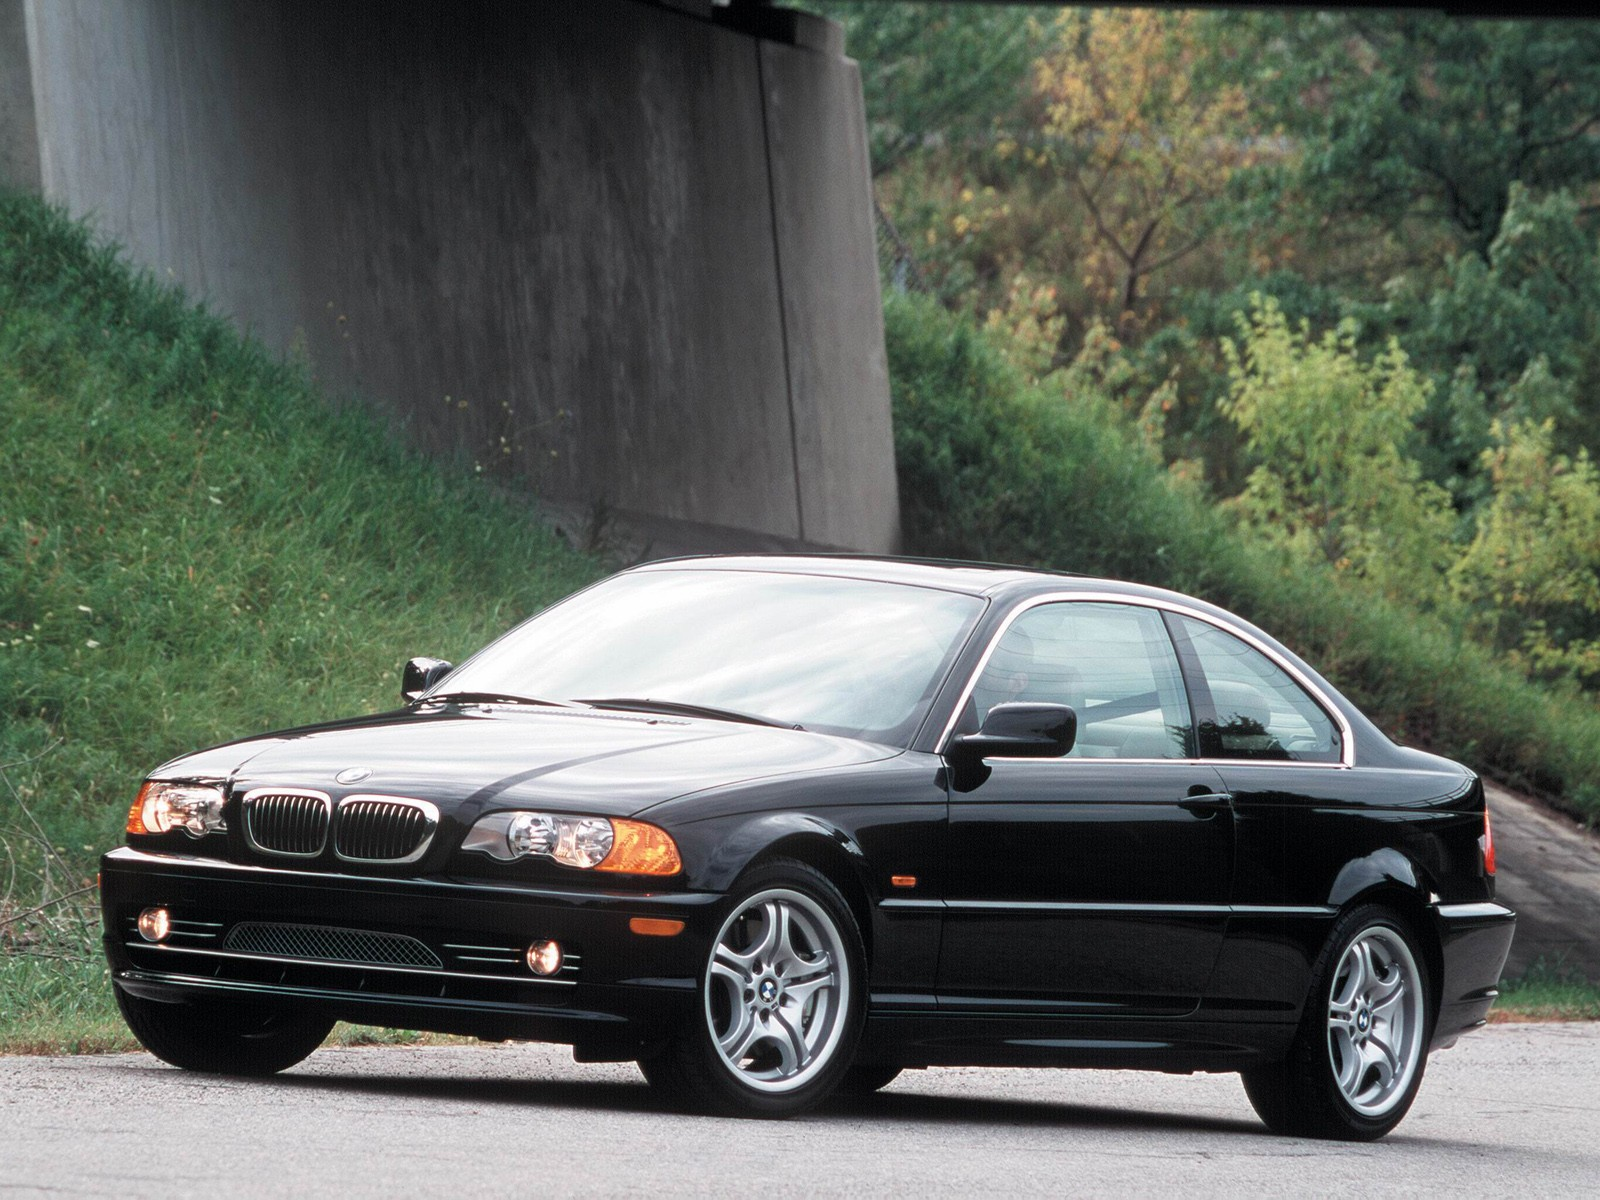 BMW 3 series 320Ci 1999 photo - 10